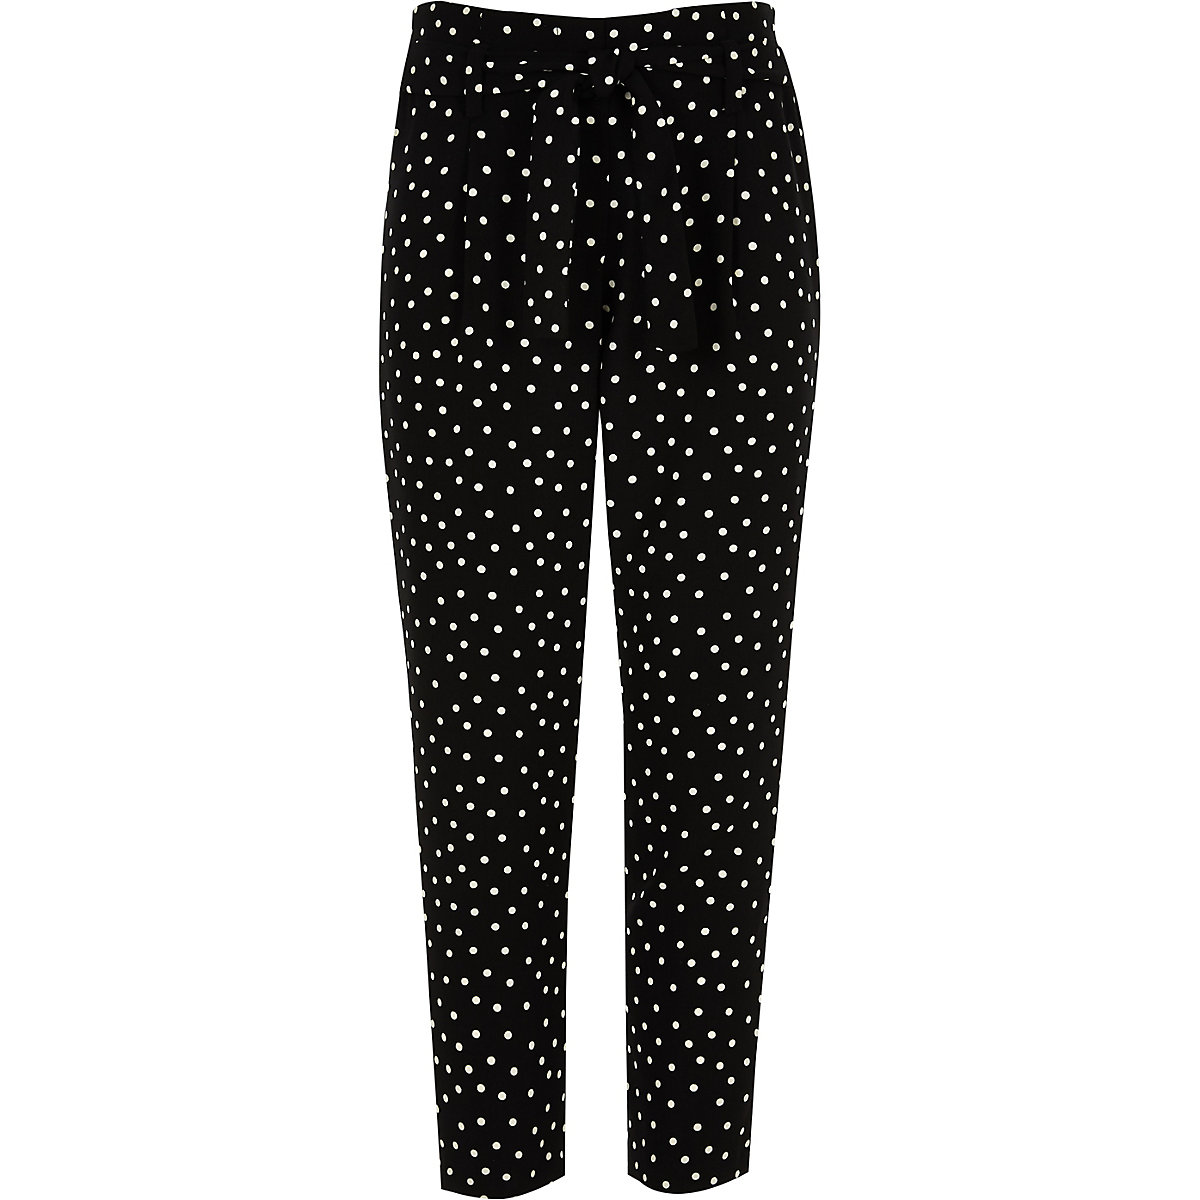 Girls black polka dot tapered pants